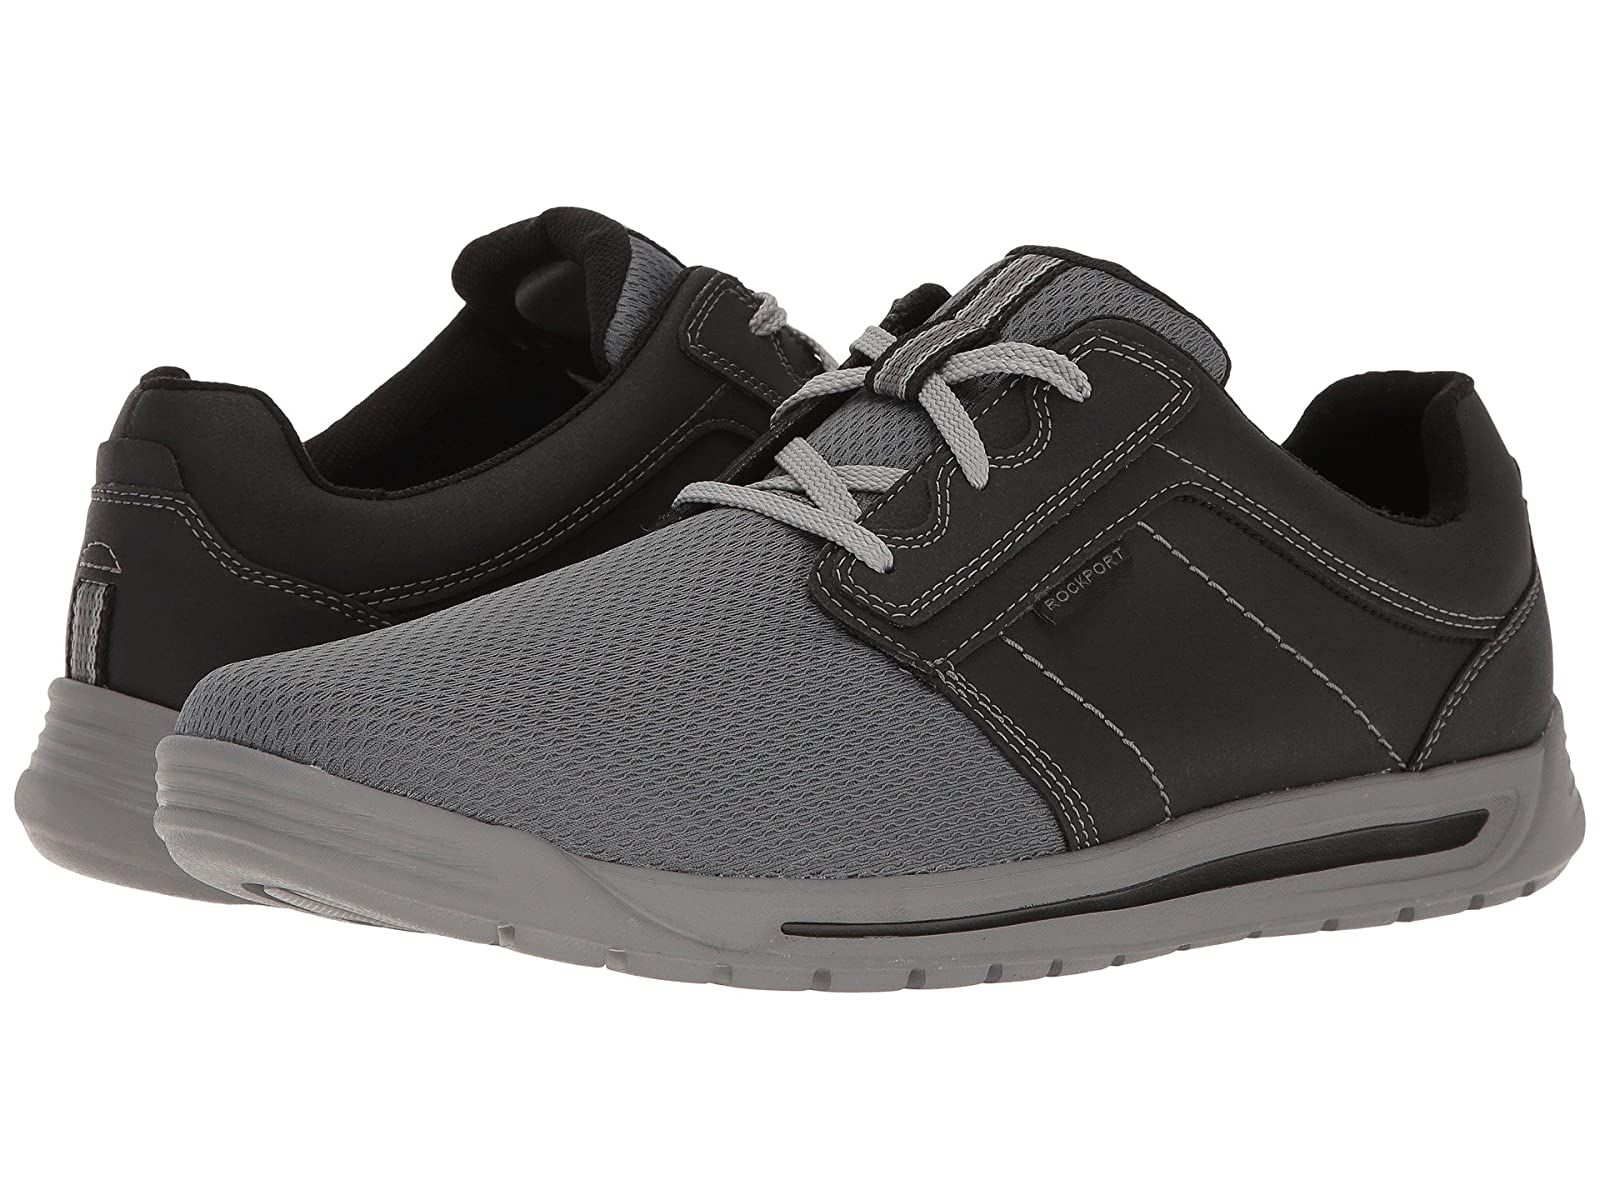 Rockport Randle Plain Toe SneakerCheap and distinctive eye-catching shoes